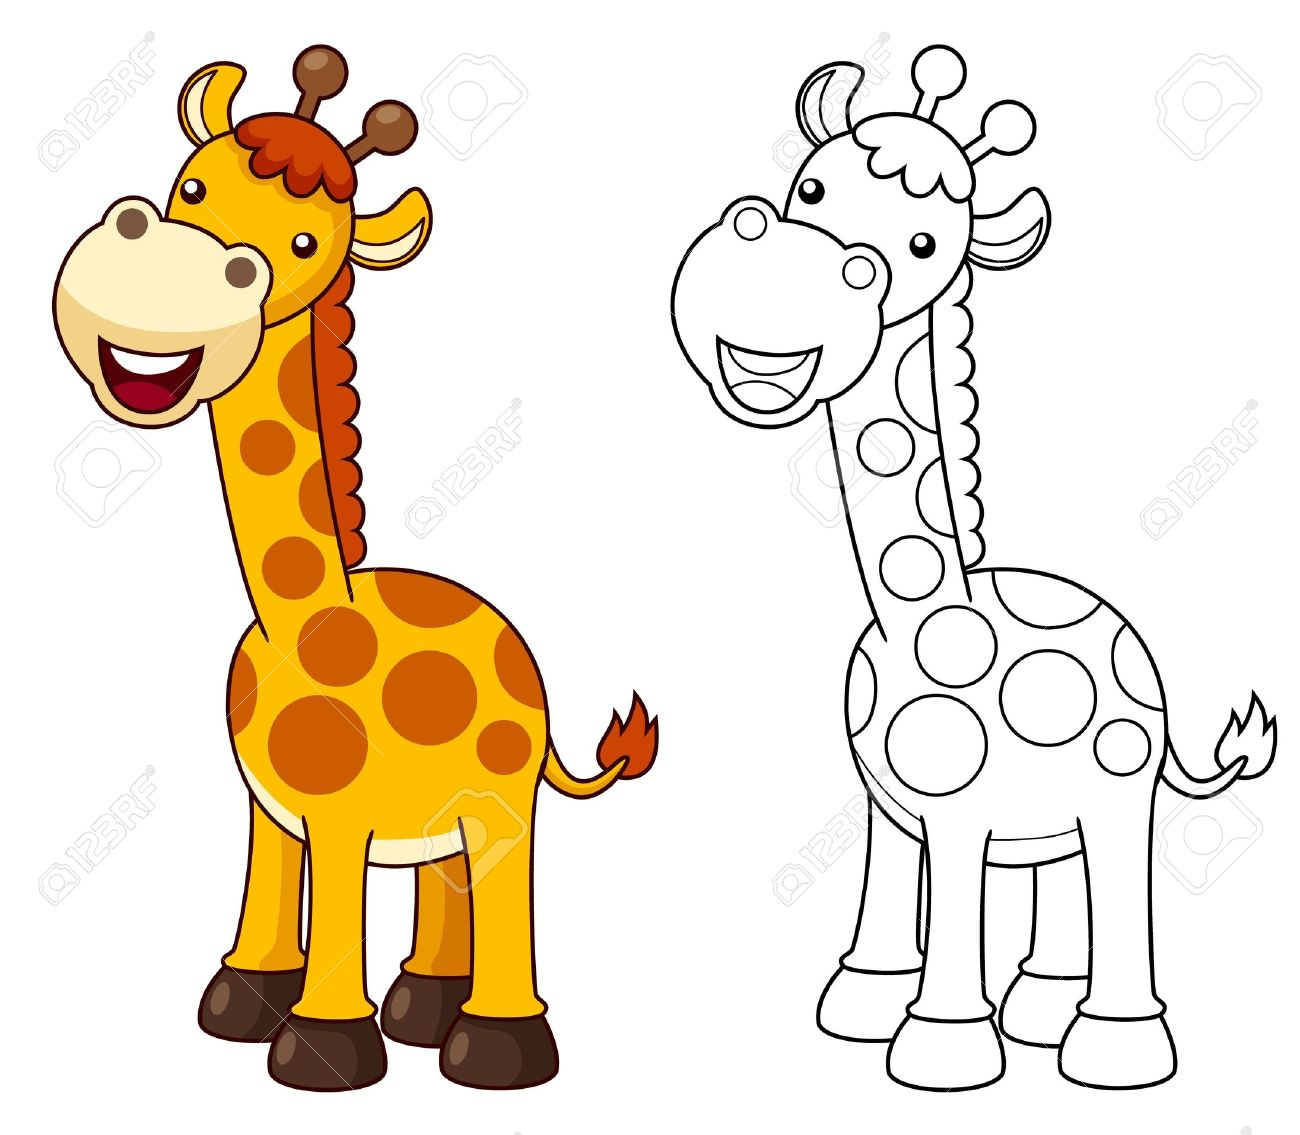 Illustration Of Cartoon Giraffe Vector Royalty Free Cliparts